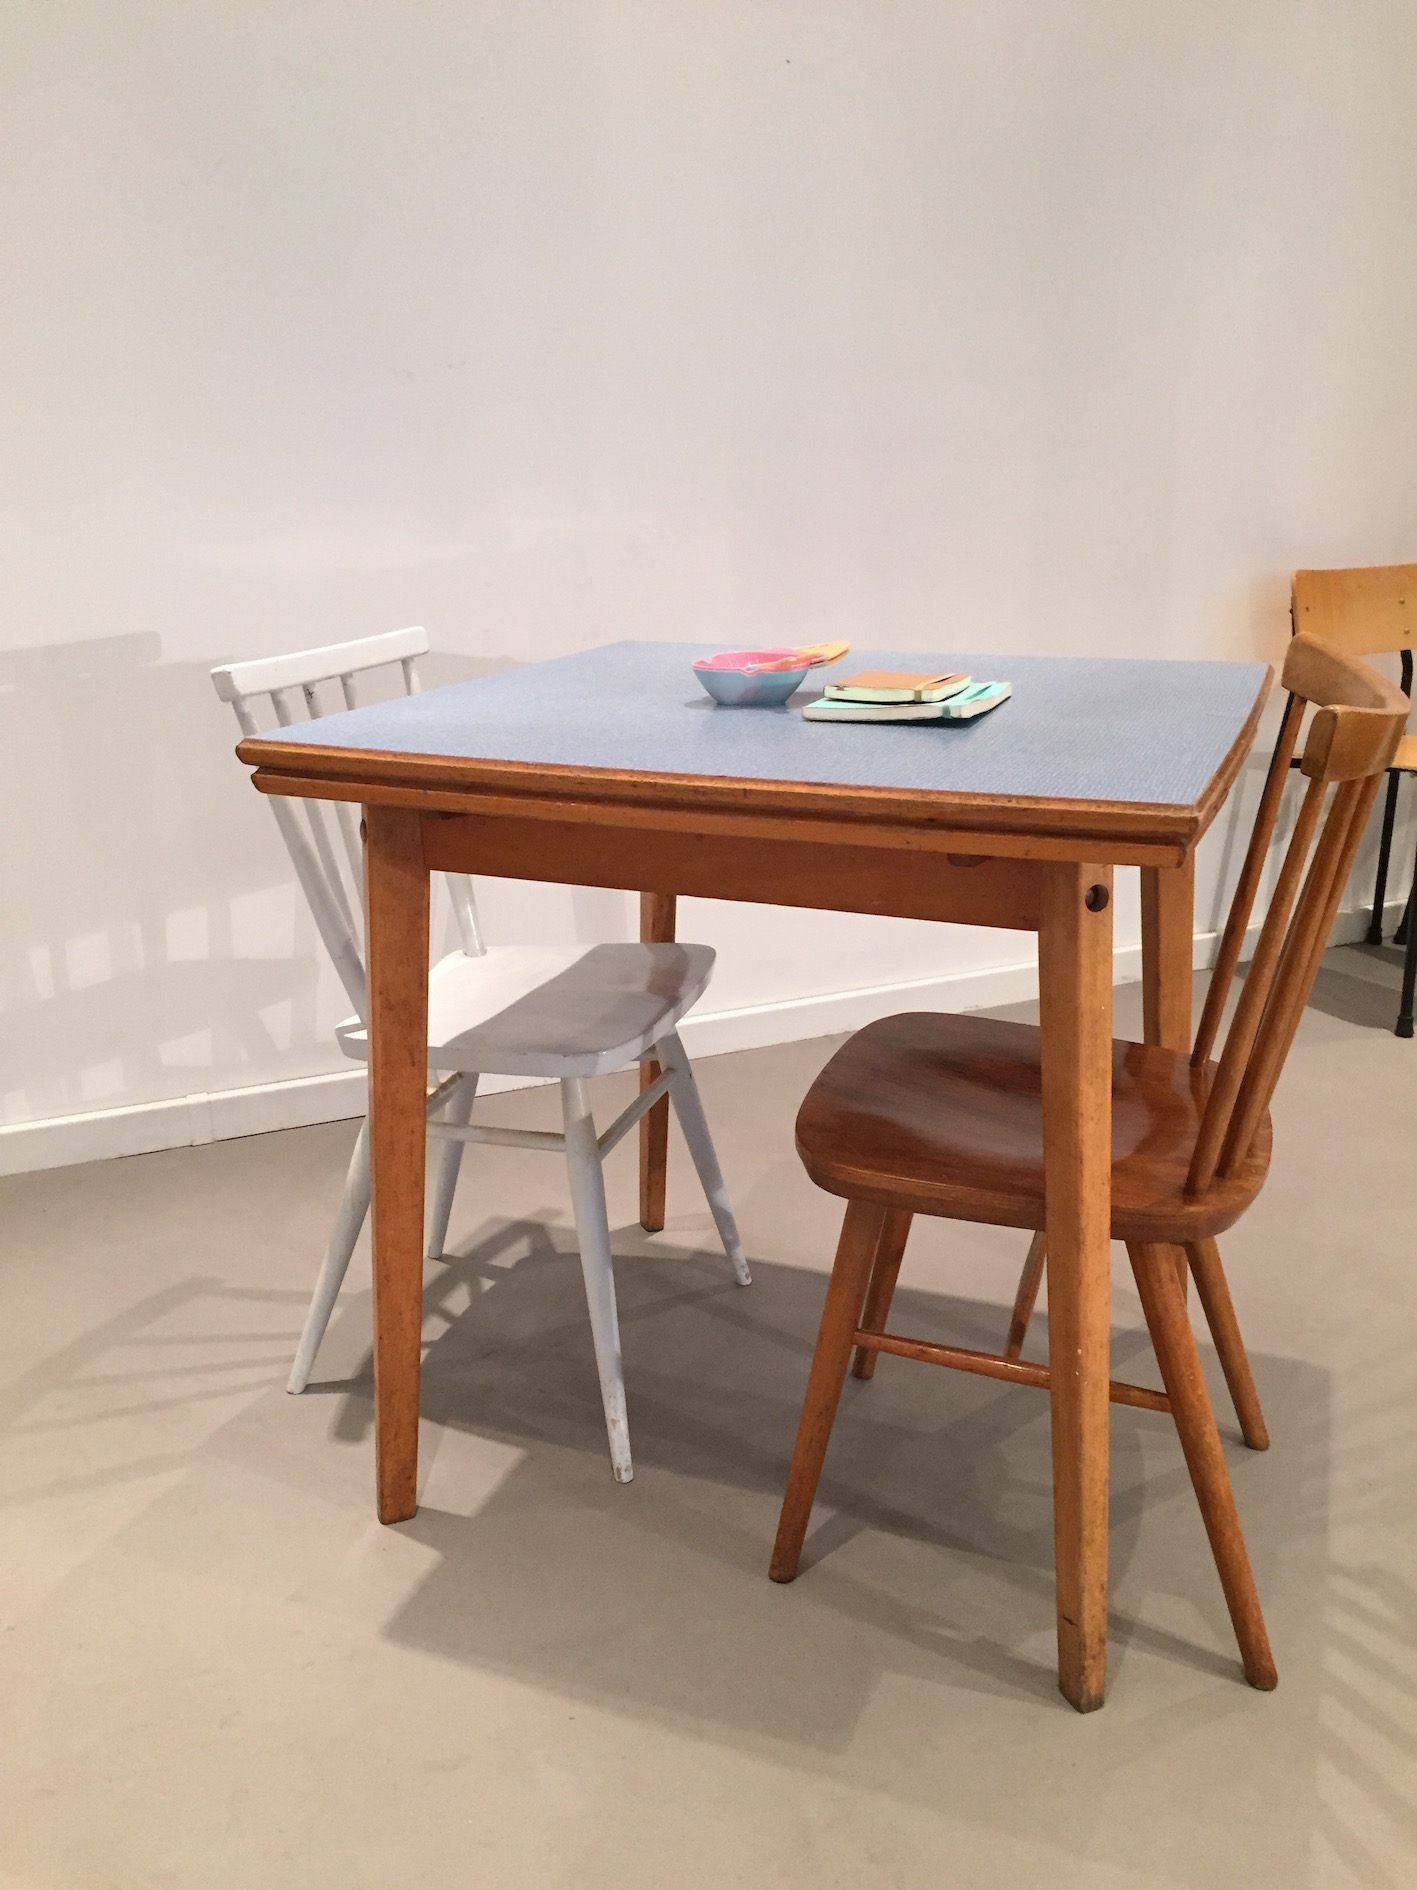 Retro Formica Table And Chairs Images 50s Kitchens